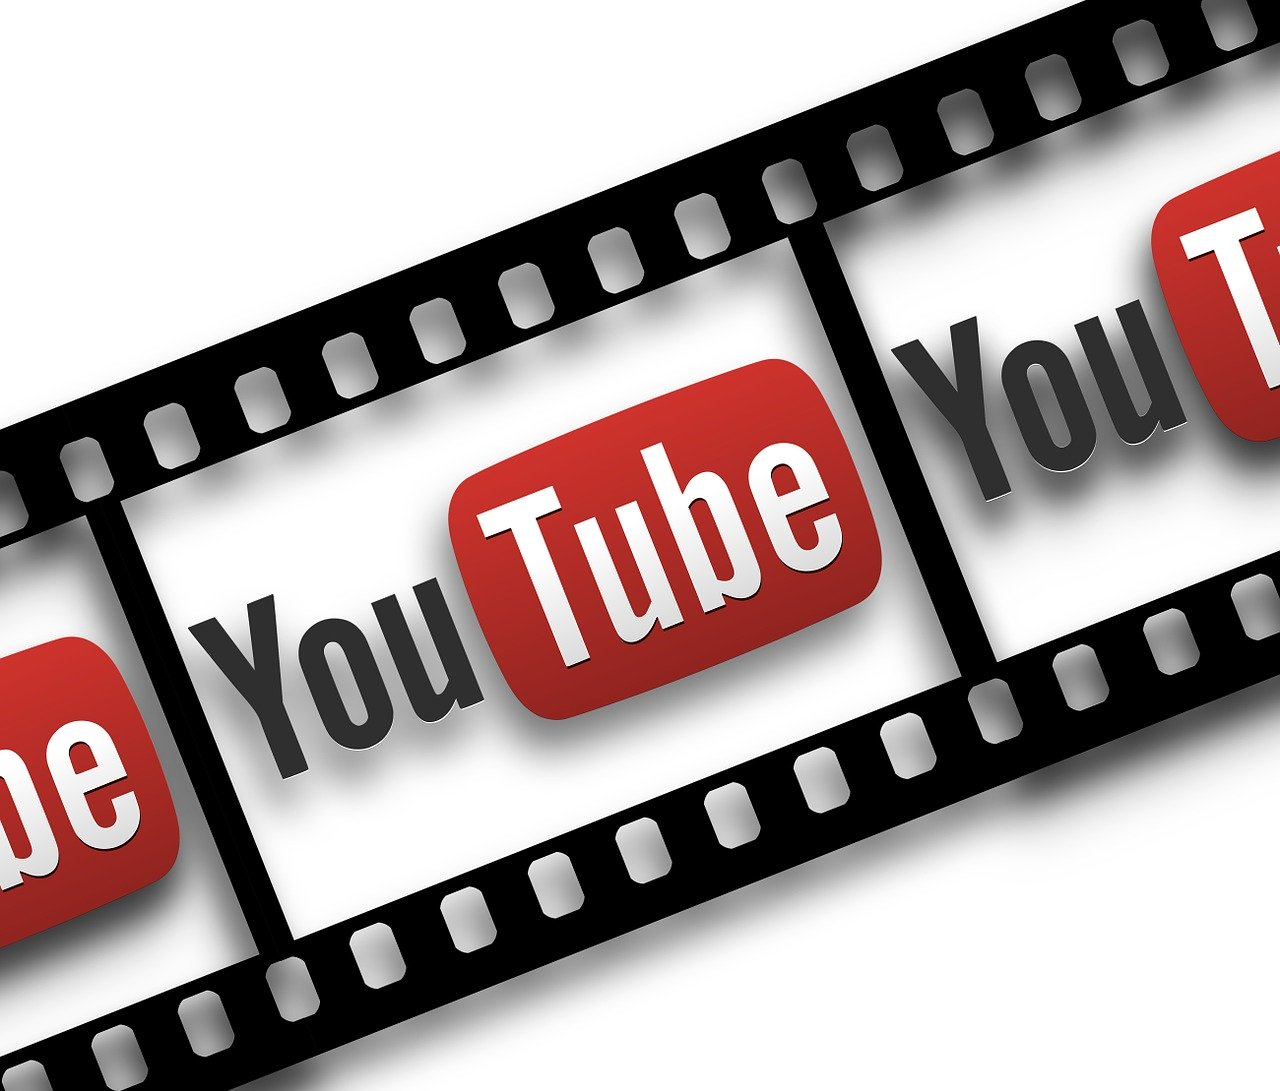 YouTube Converter Hack: Convert YouTube Videos into MP3 and MP4 For Free